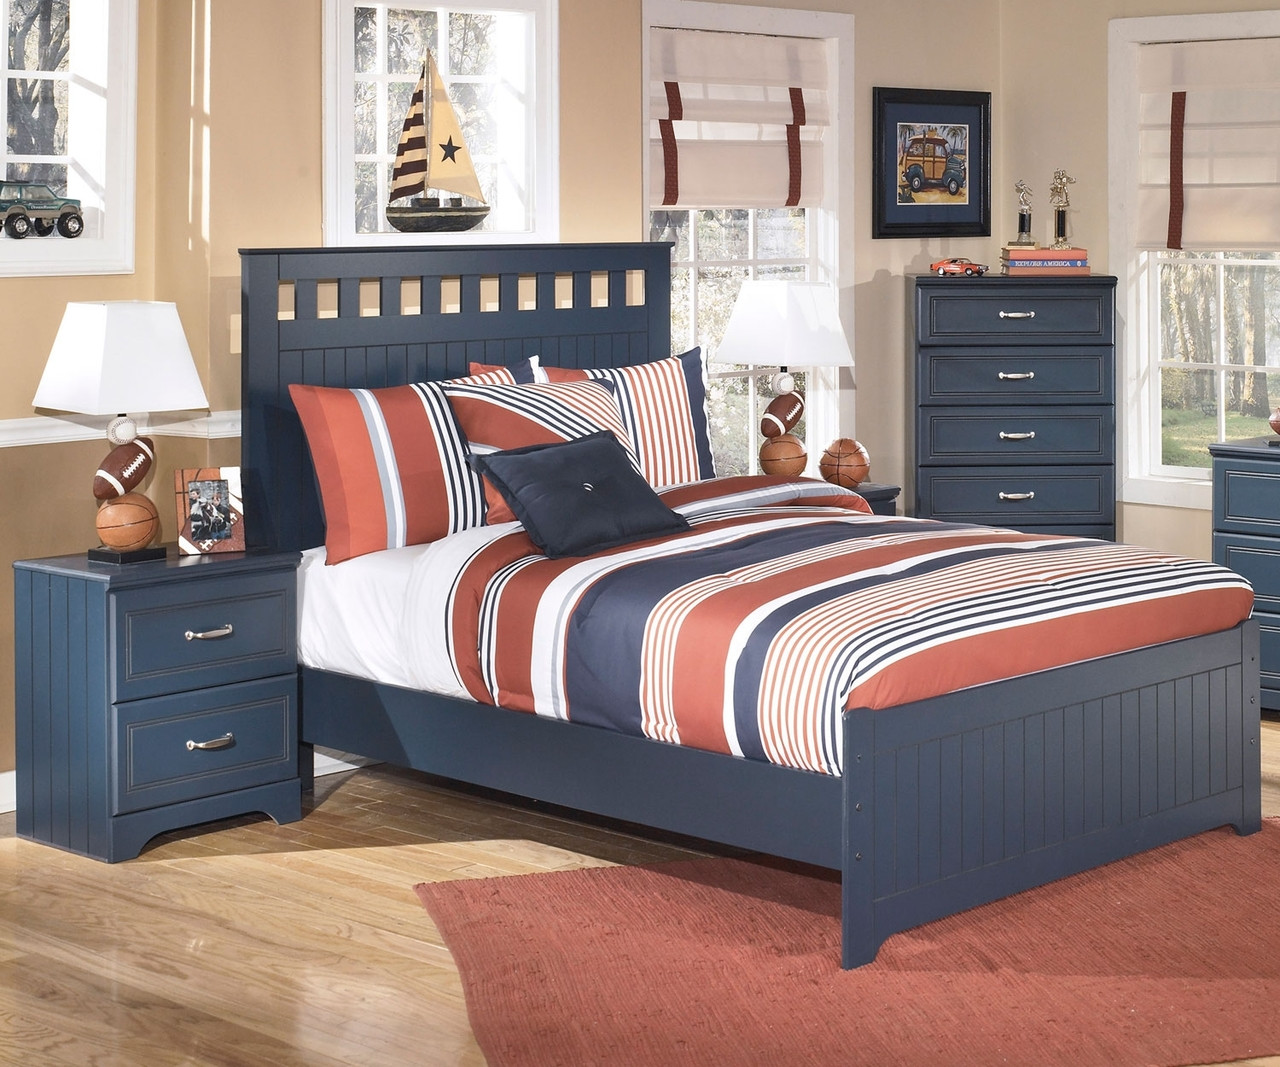 Leo b103 full size panel bed ashley kids furniture for Boys full size bed